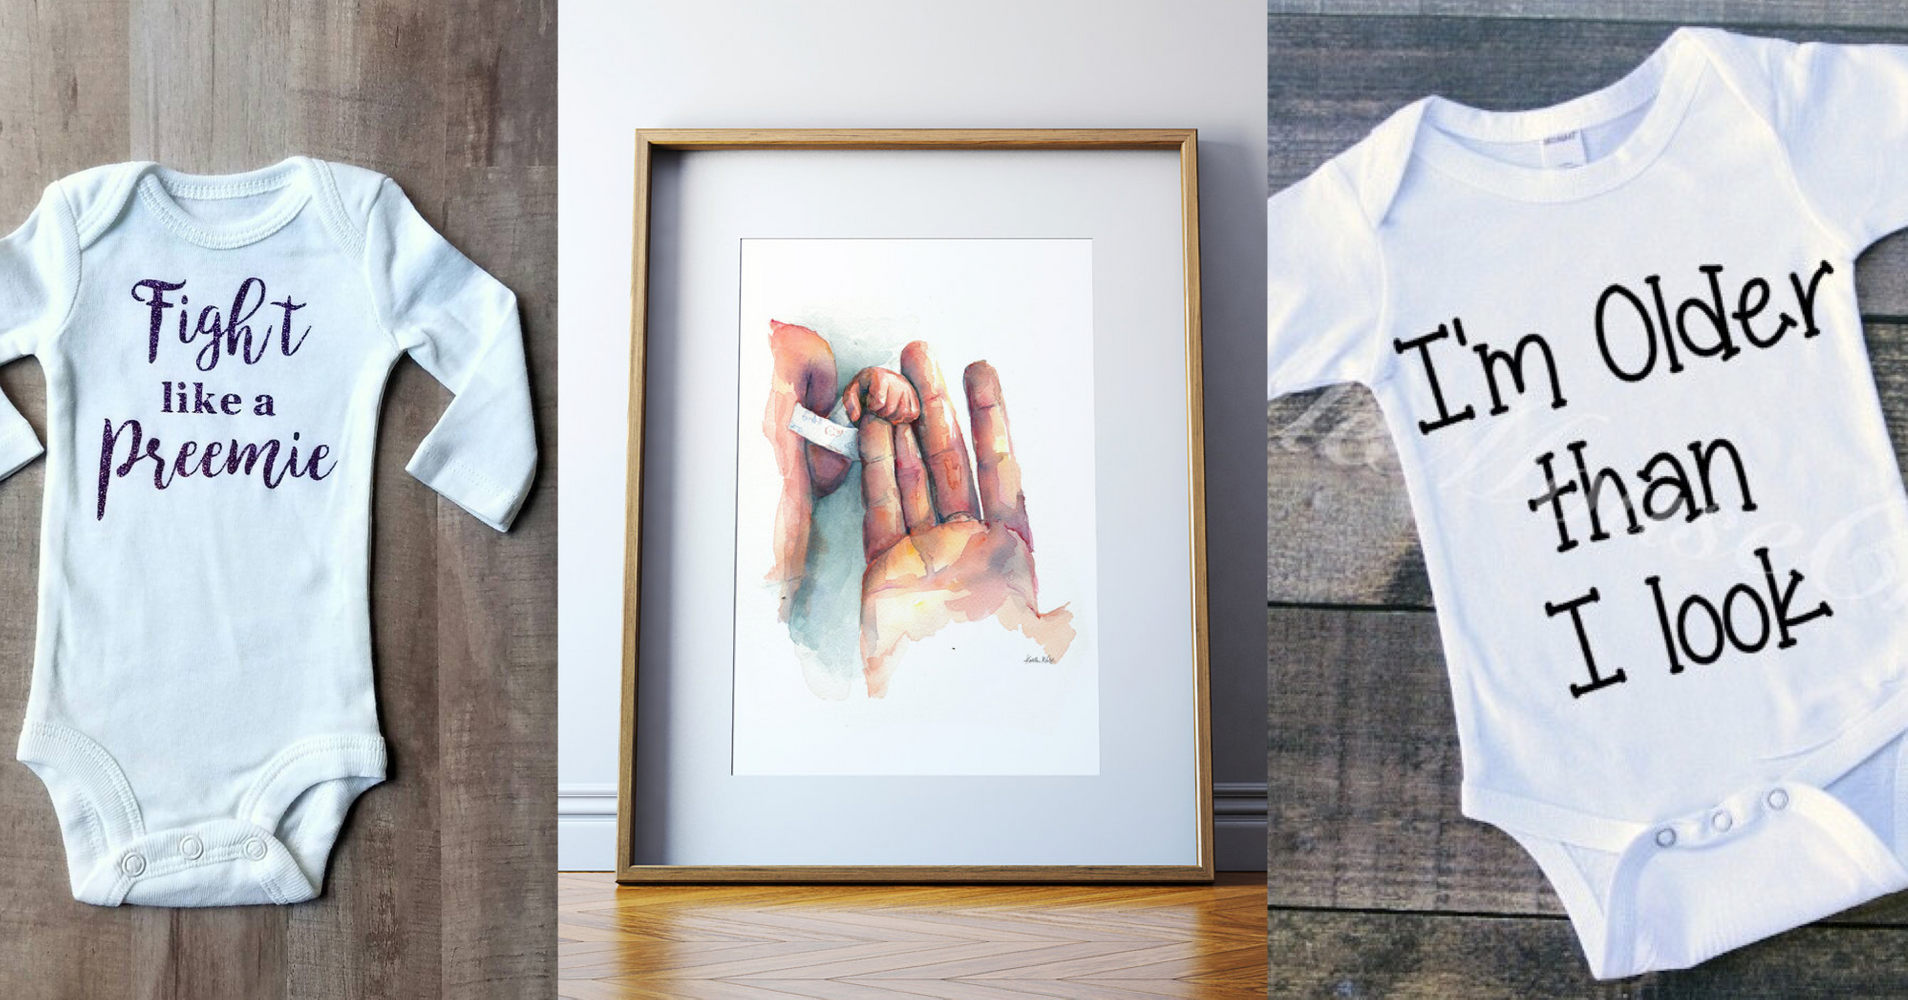 Premature Baby Gifts Australia : Inspiring gifts for premature babies huffpost